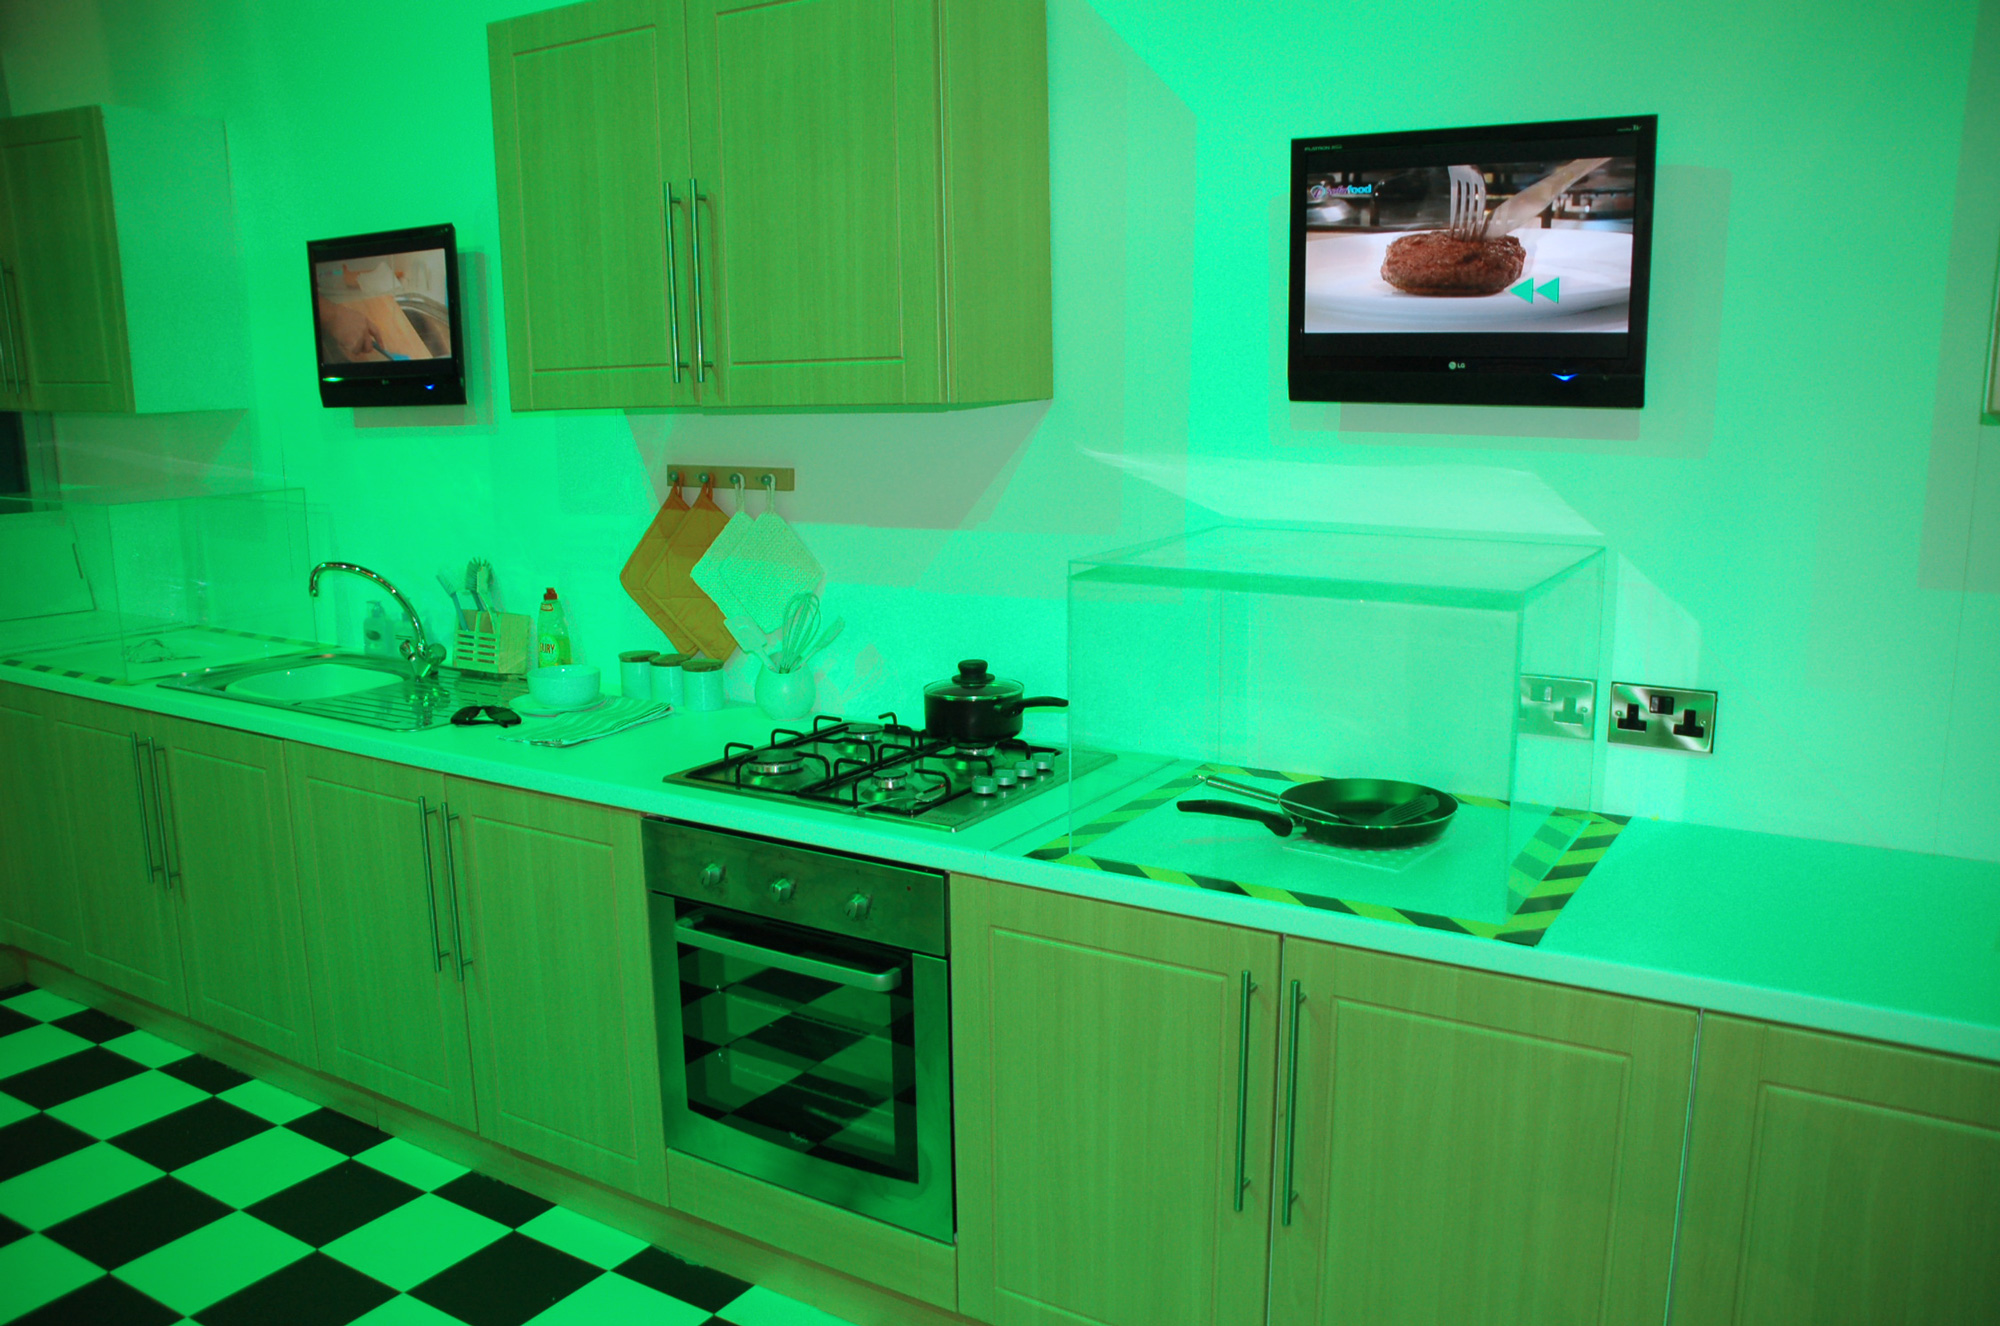 Experiential, exhibition, showcase kitchen